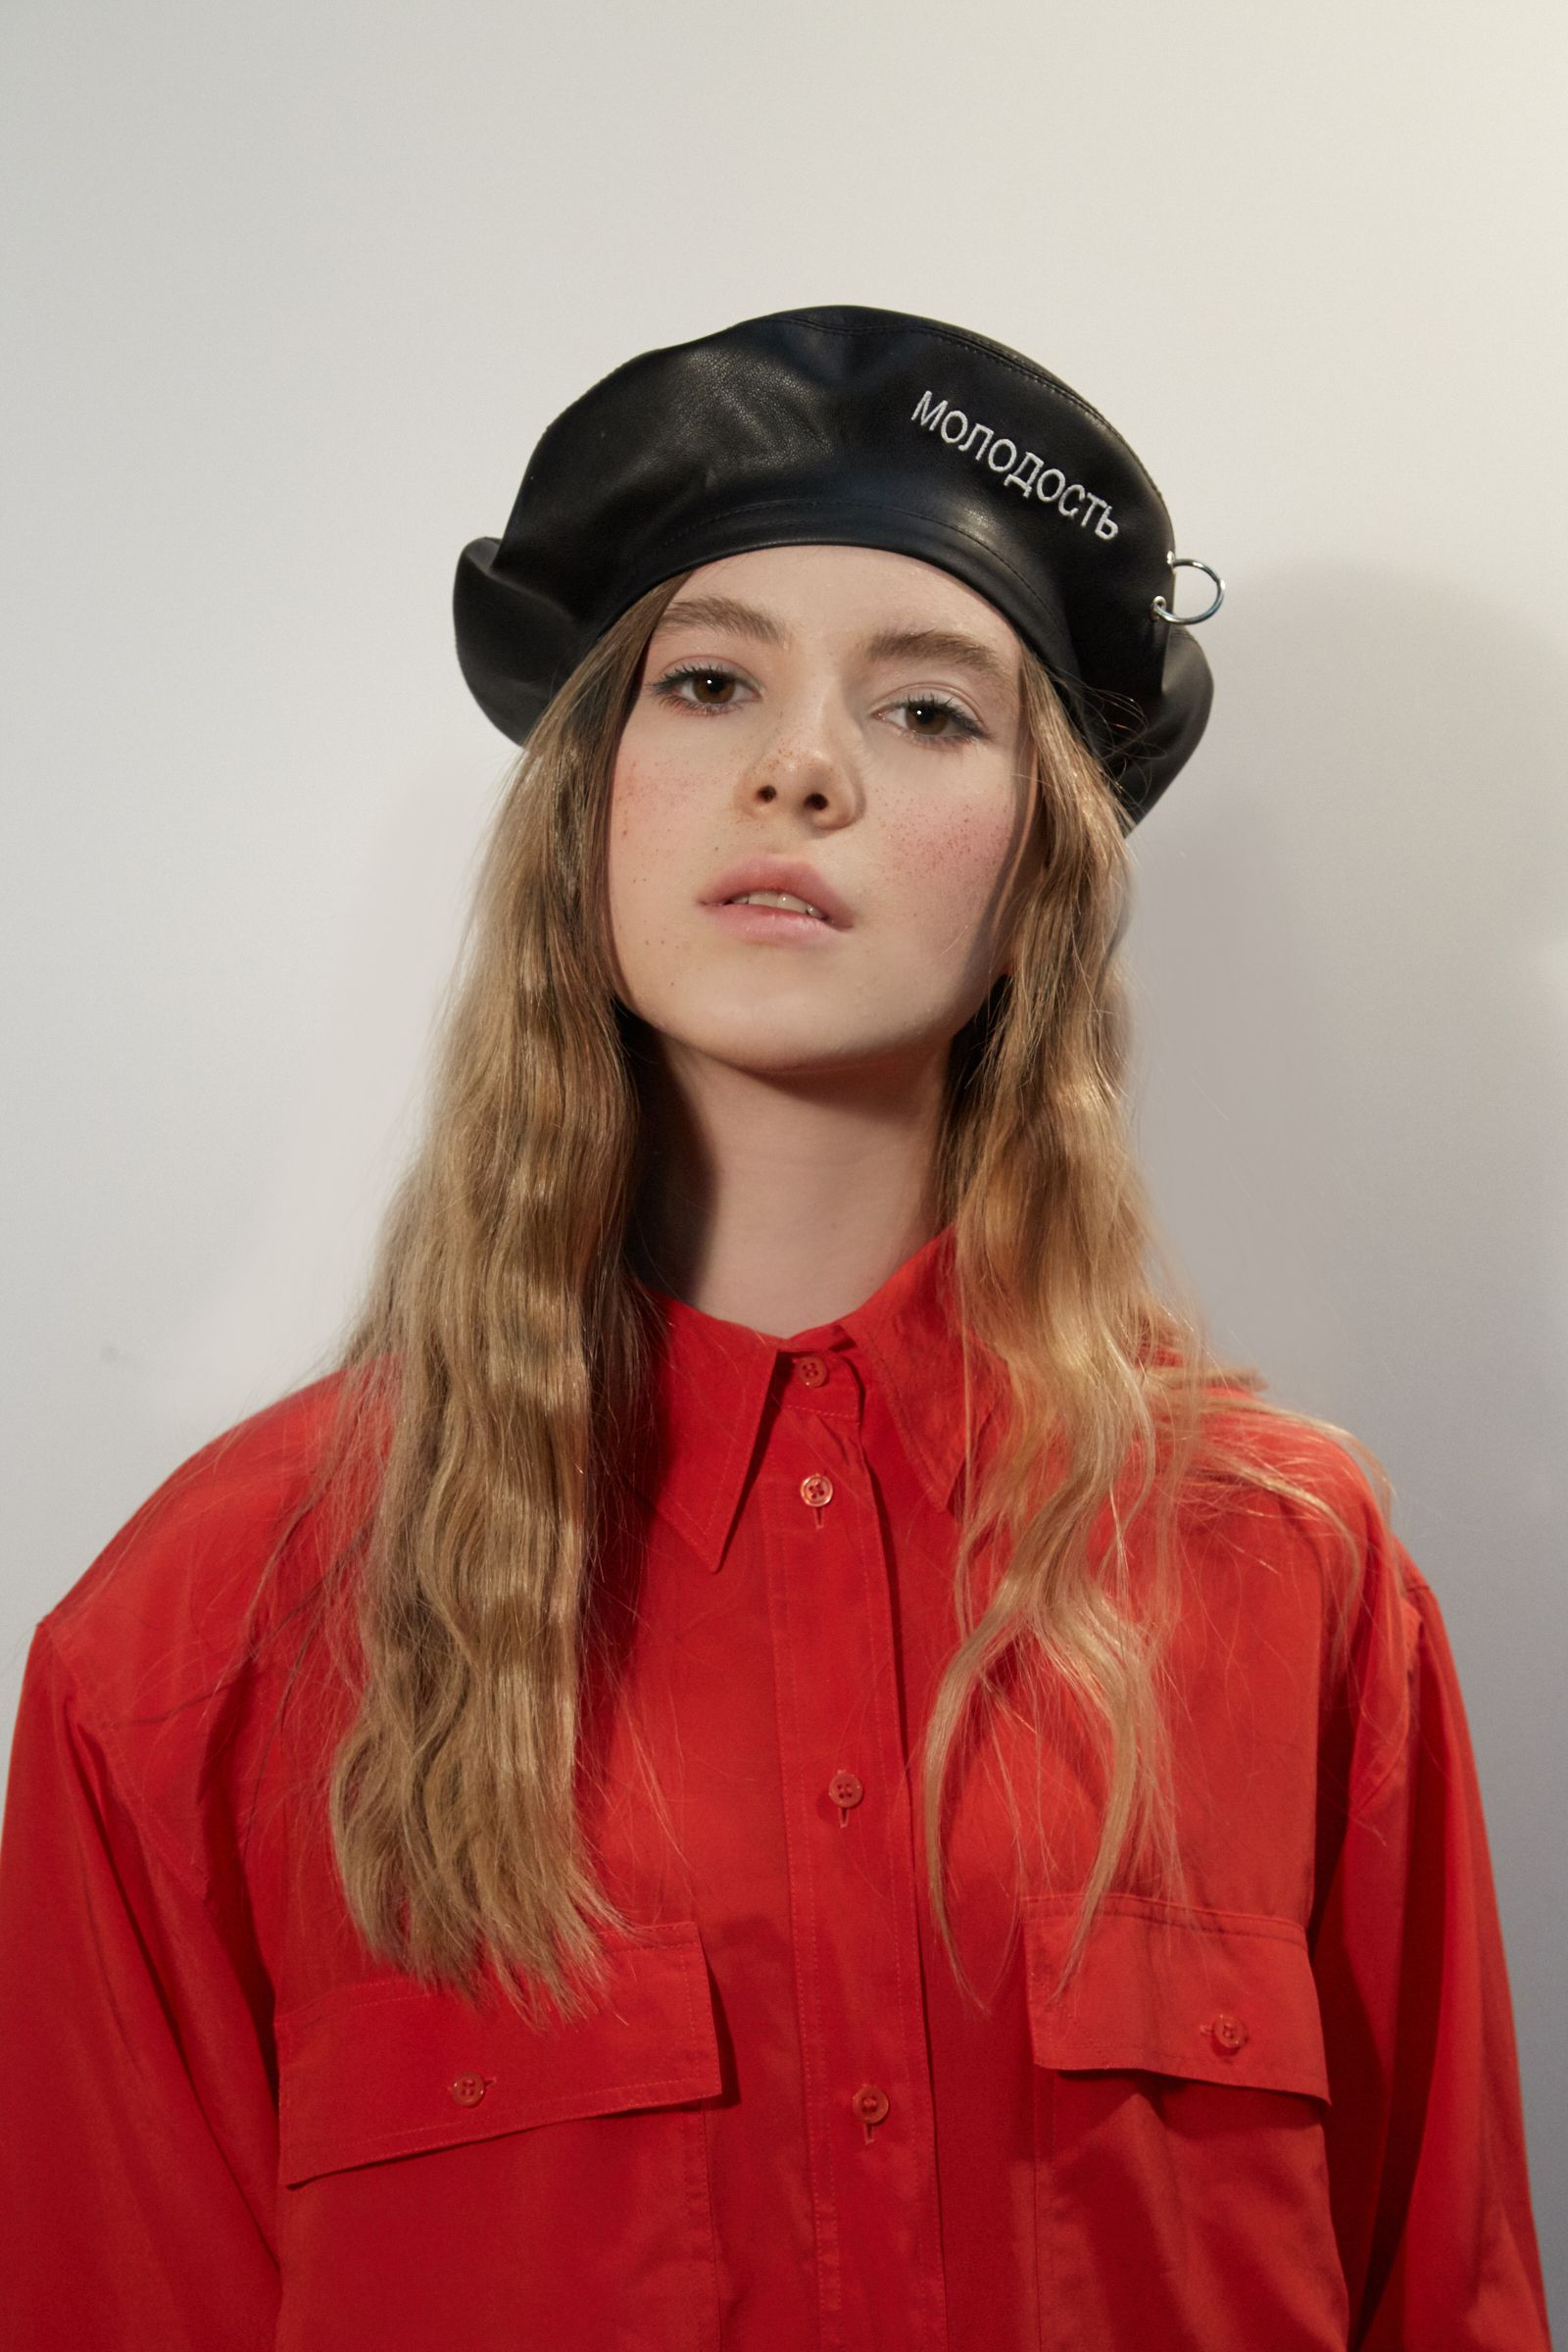 f4010d9a26e81 JANE Leather beret with embroidery and piercing